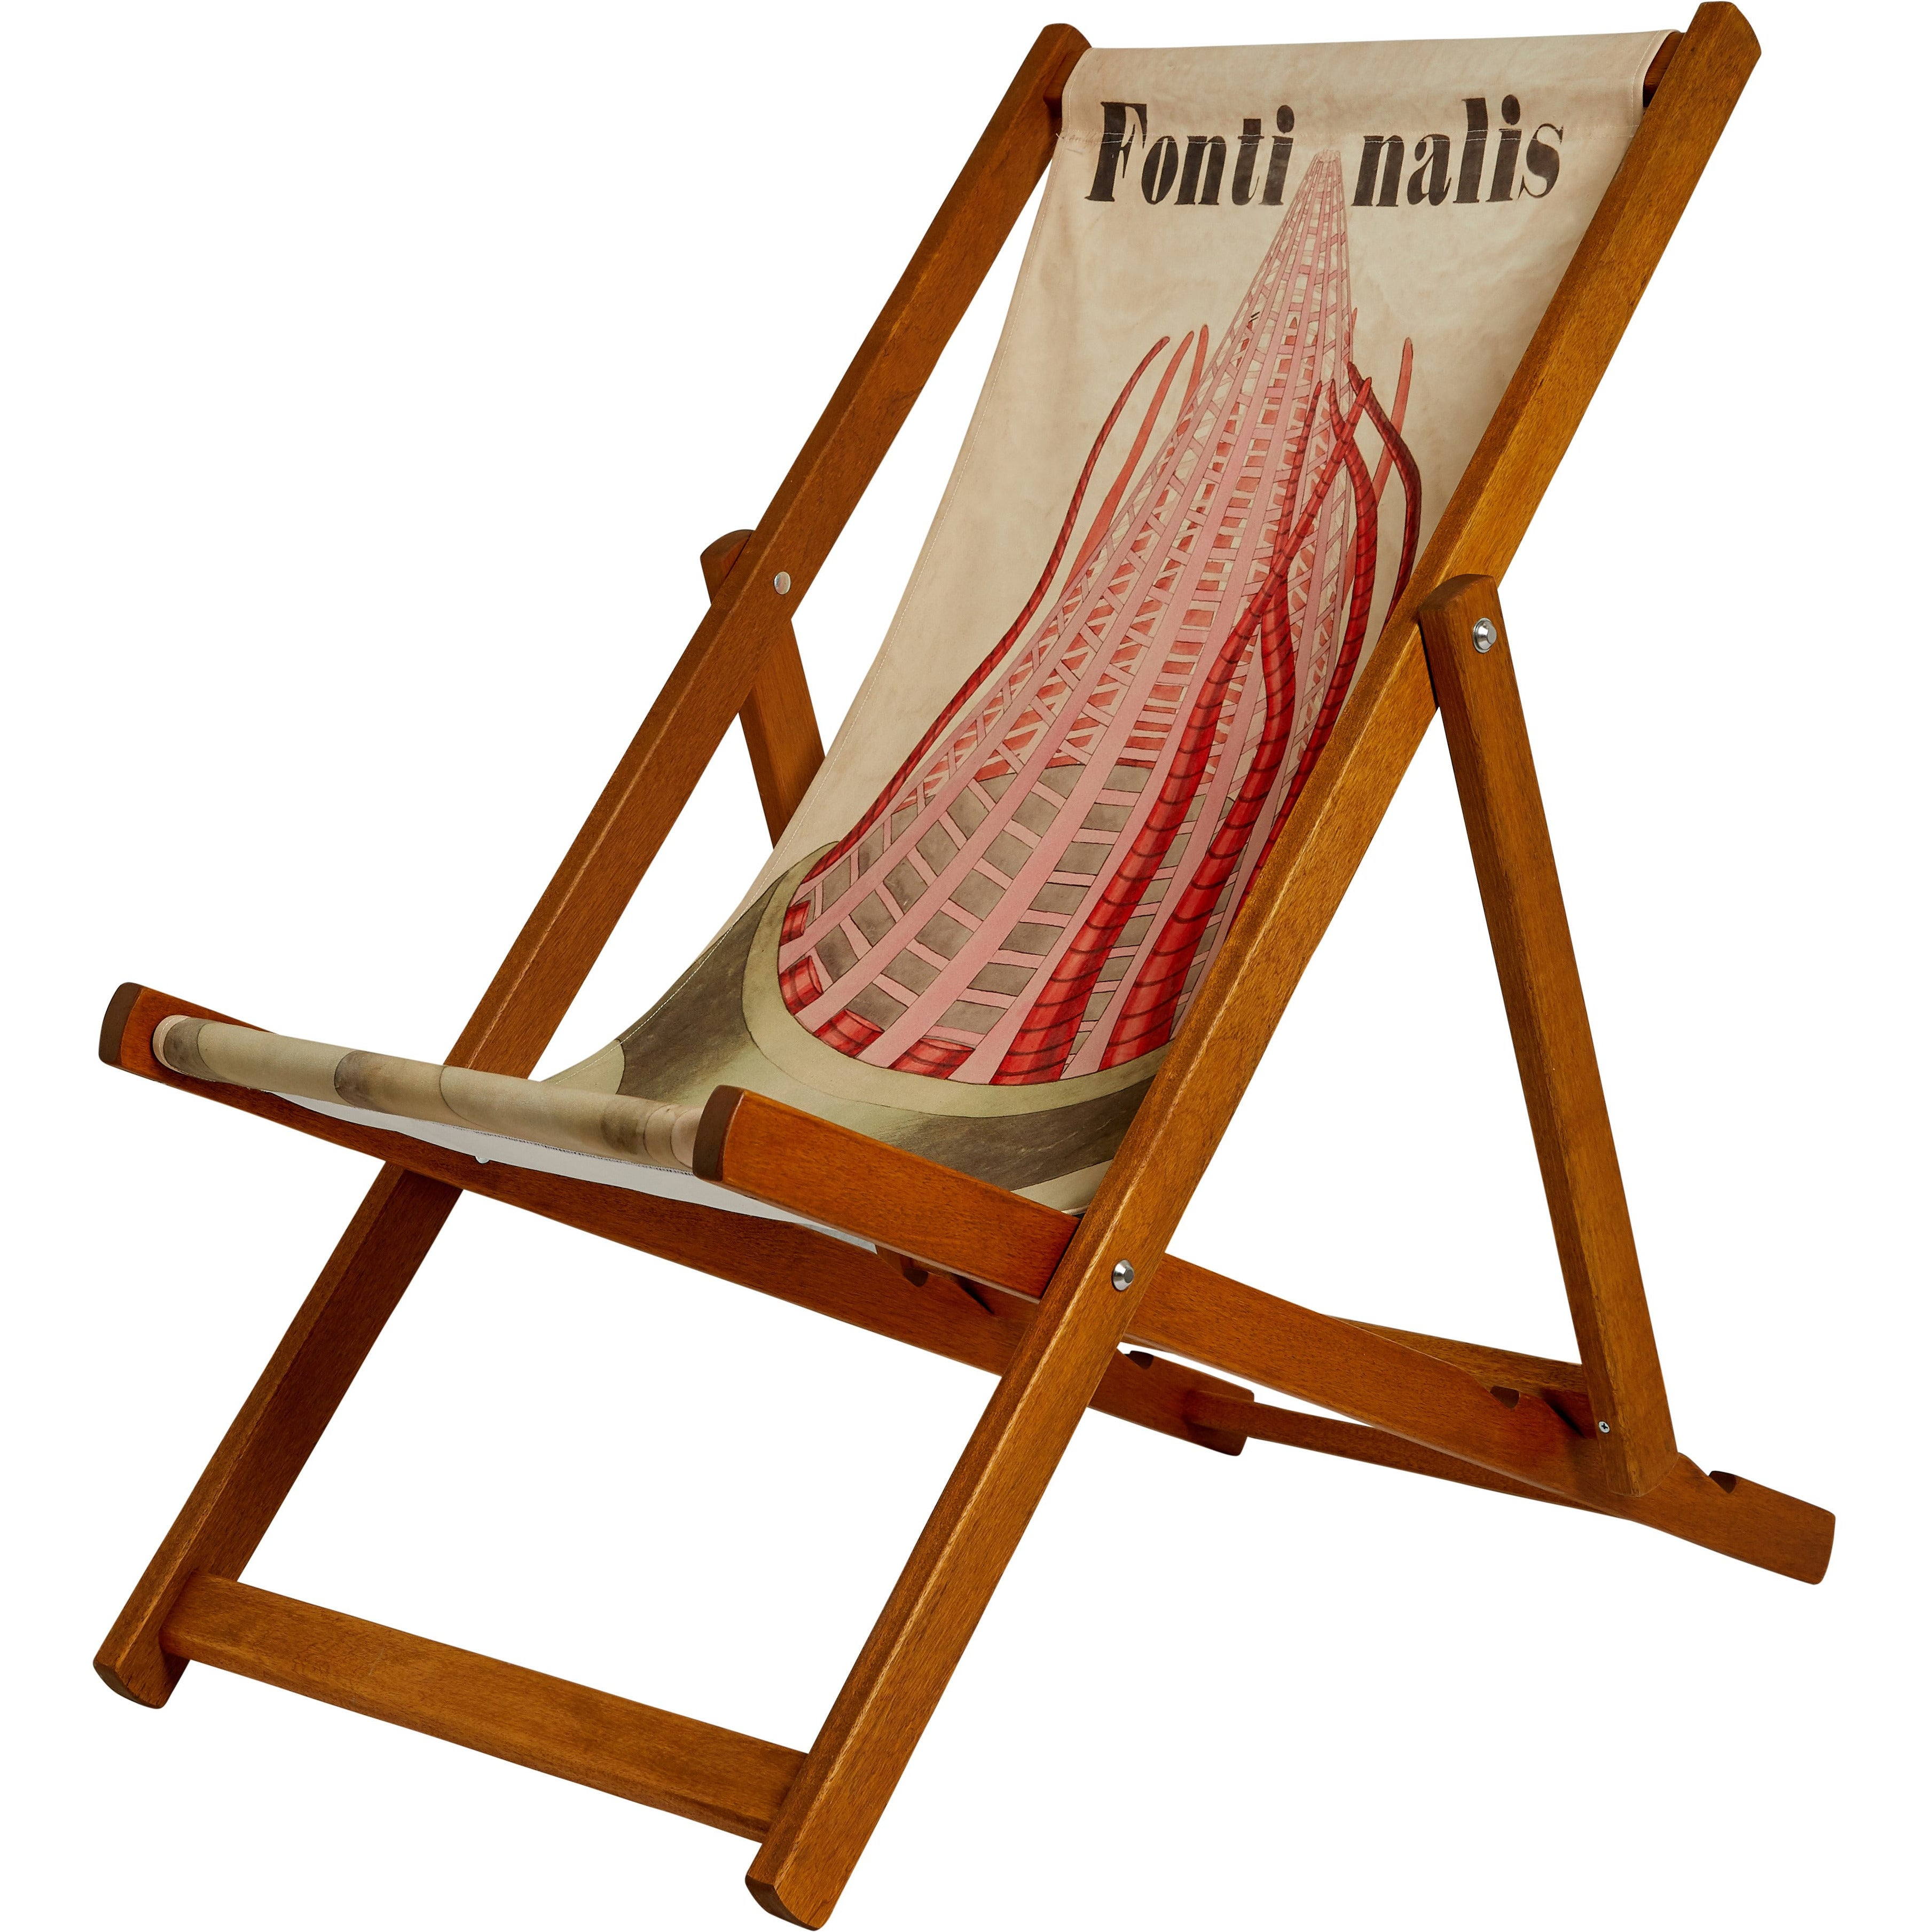 Featured image for the project: Henslow's Fontinalis - Deckchair